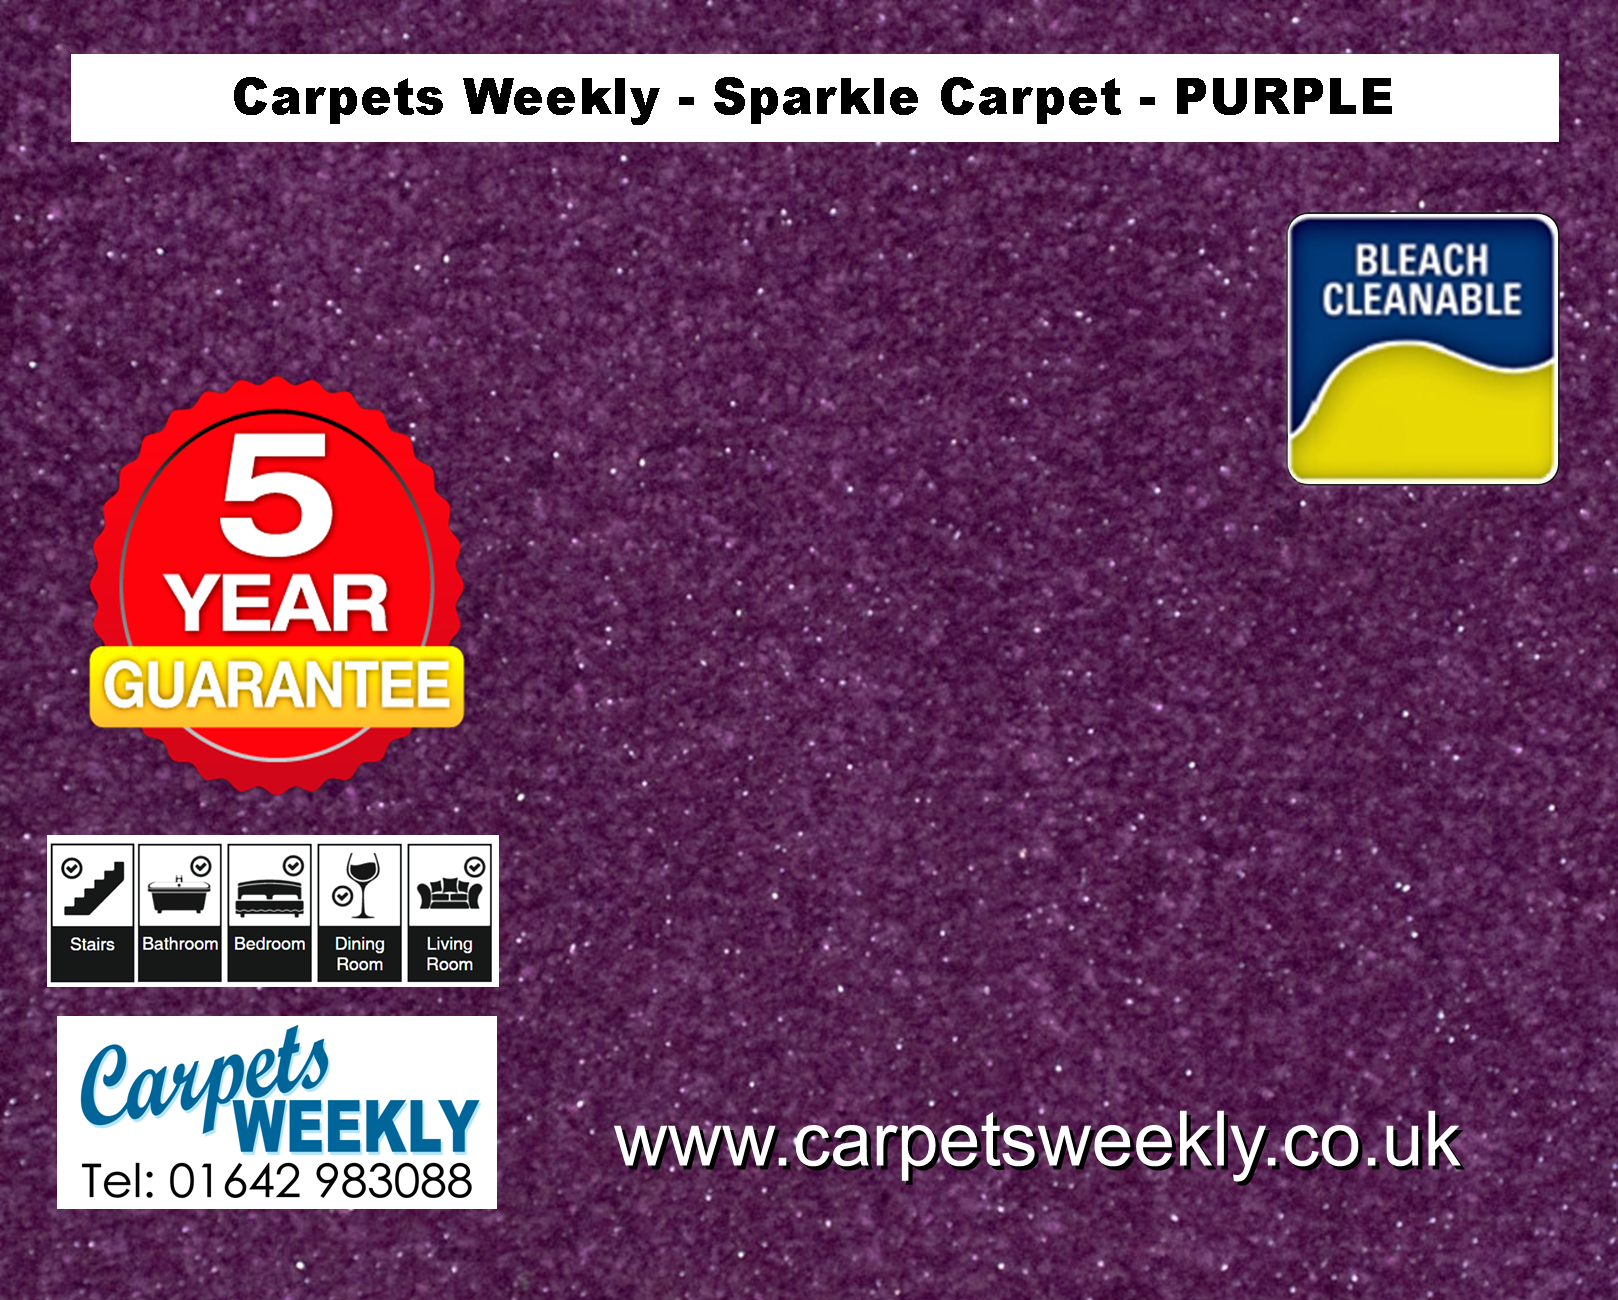 Purple Sparkle Carpet from Carpets Weekly